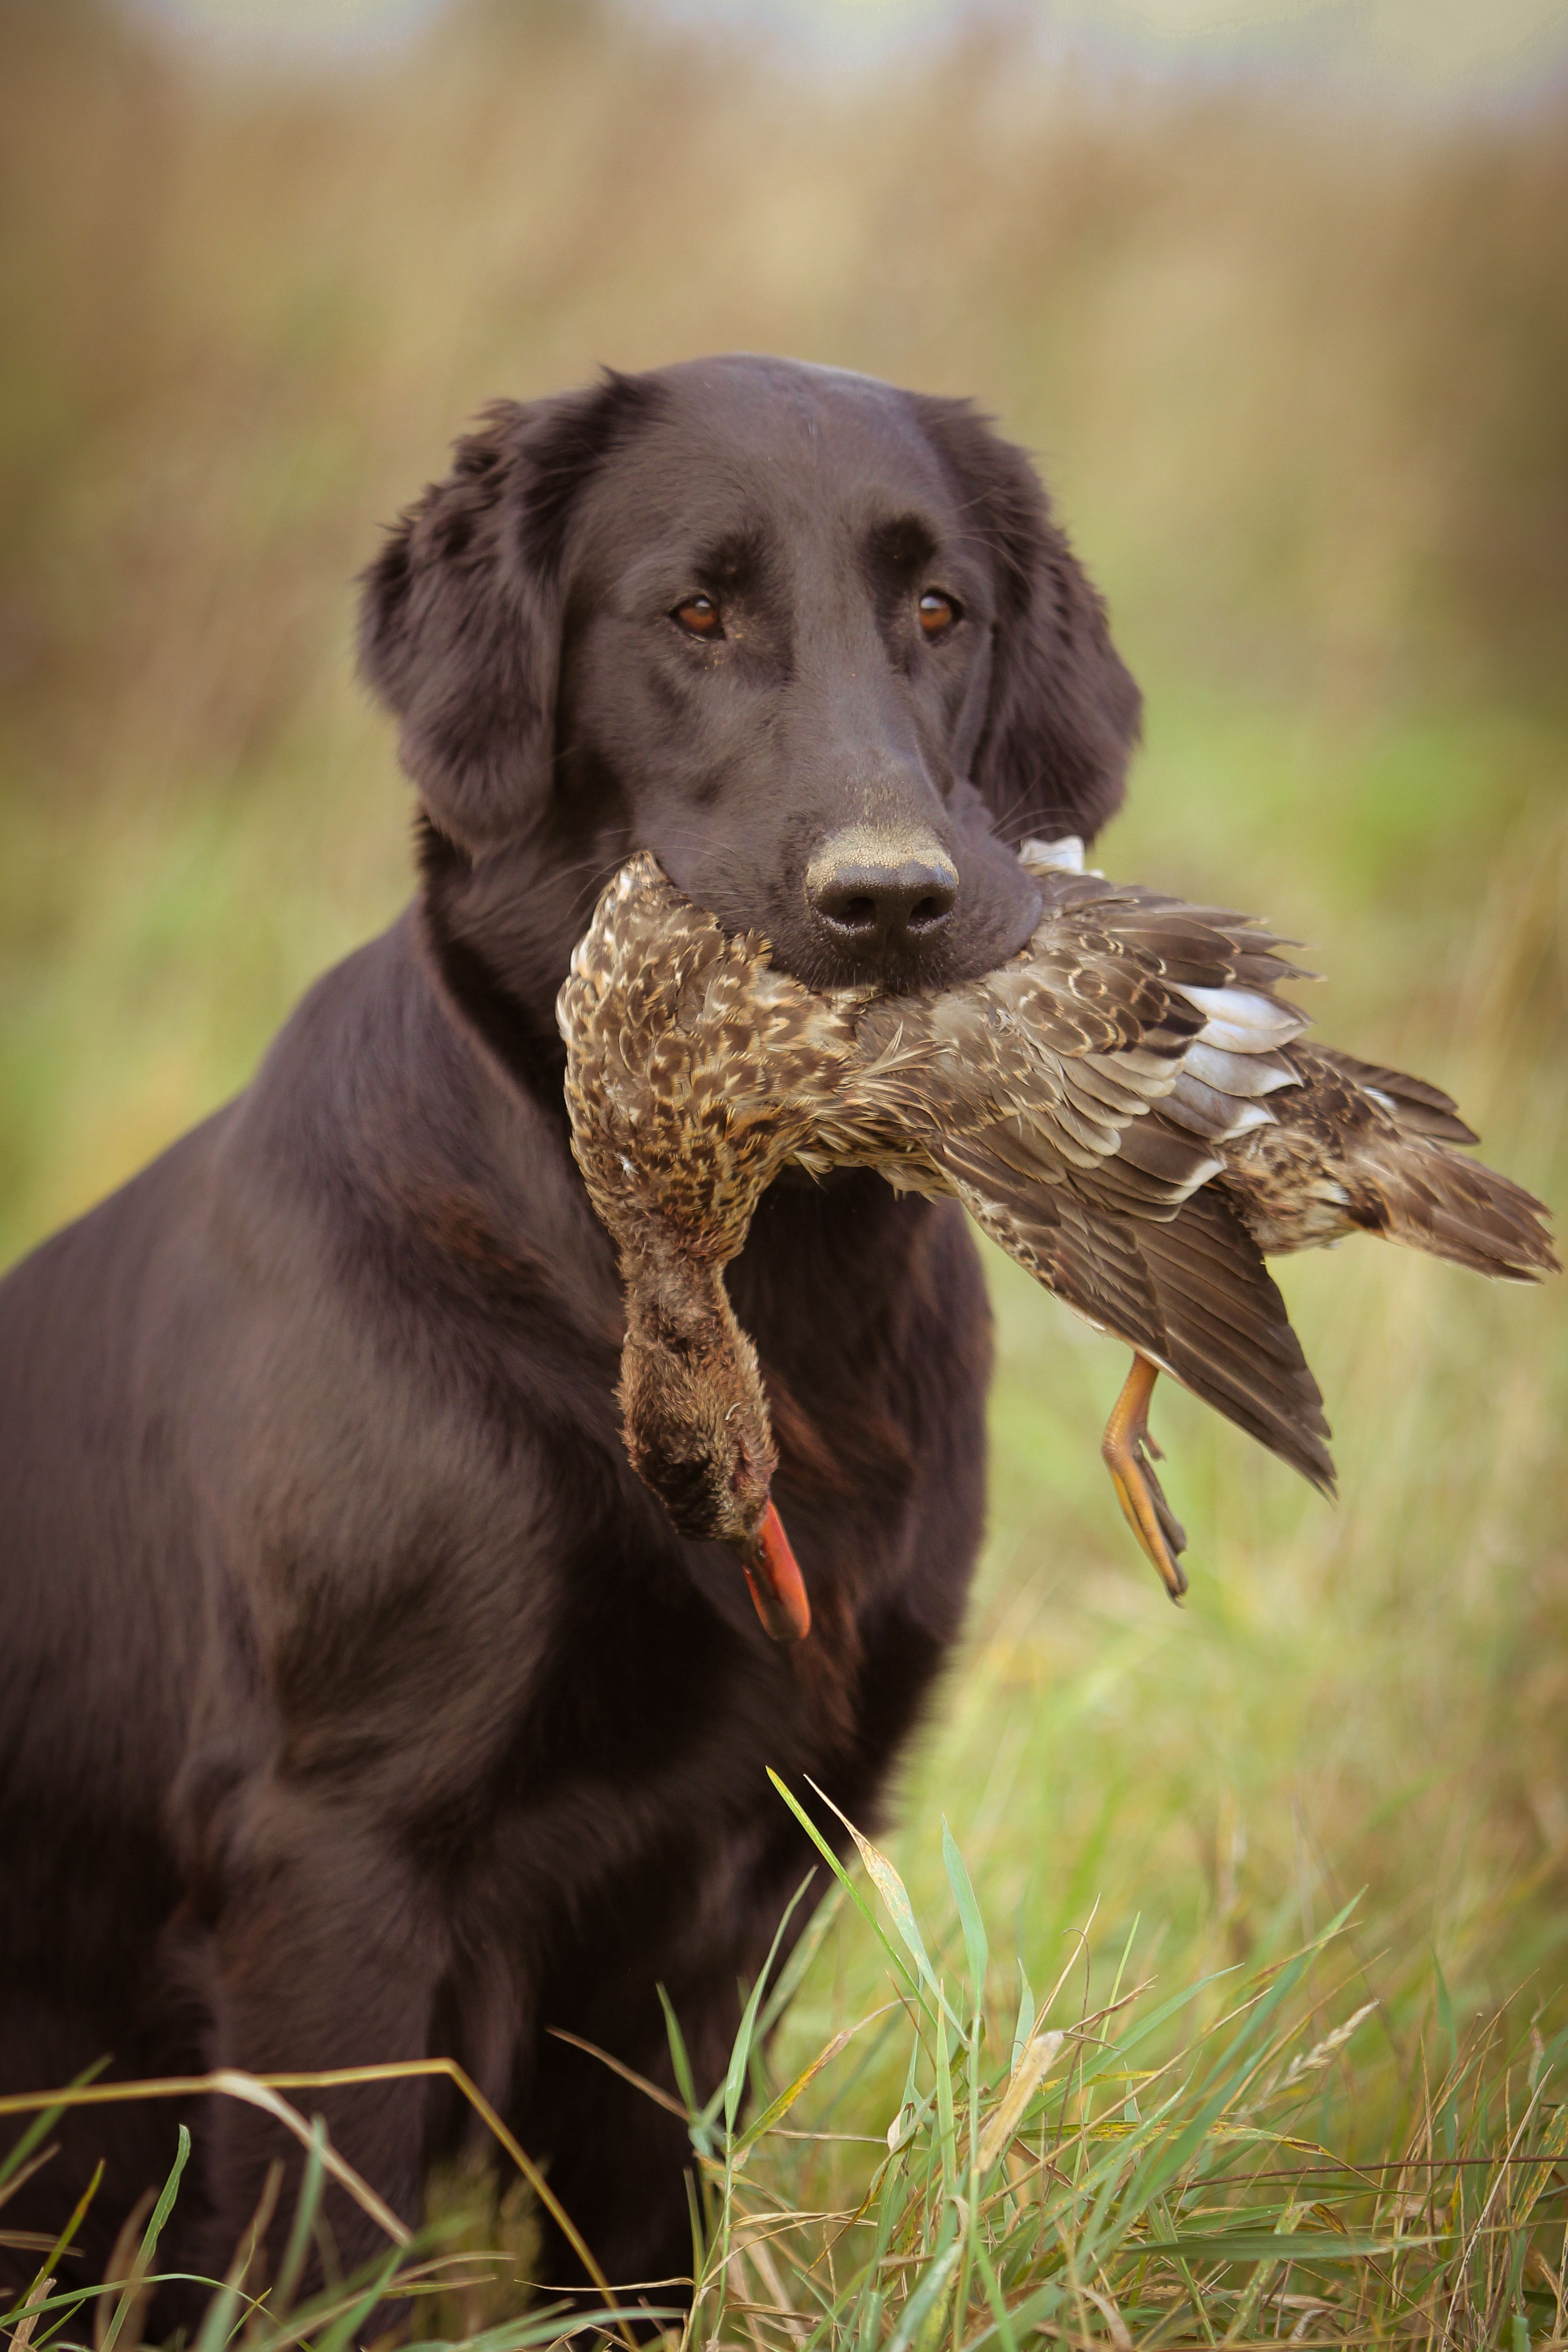 Flat Coated Retriever bred to work with bird hunters, he